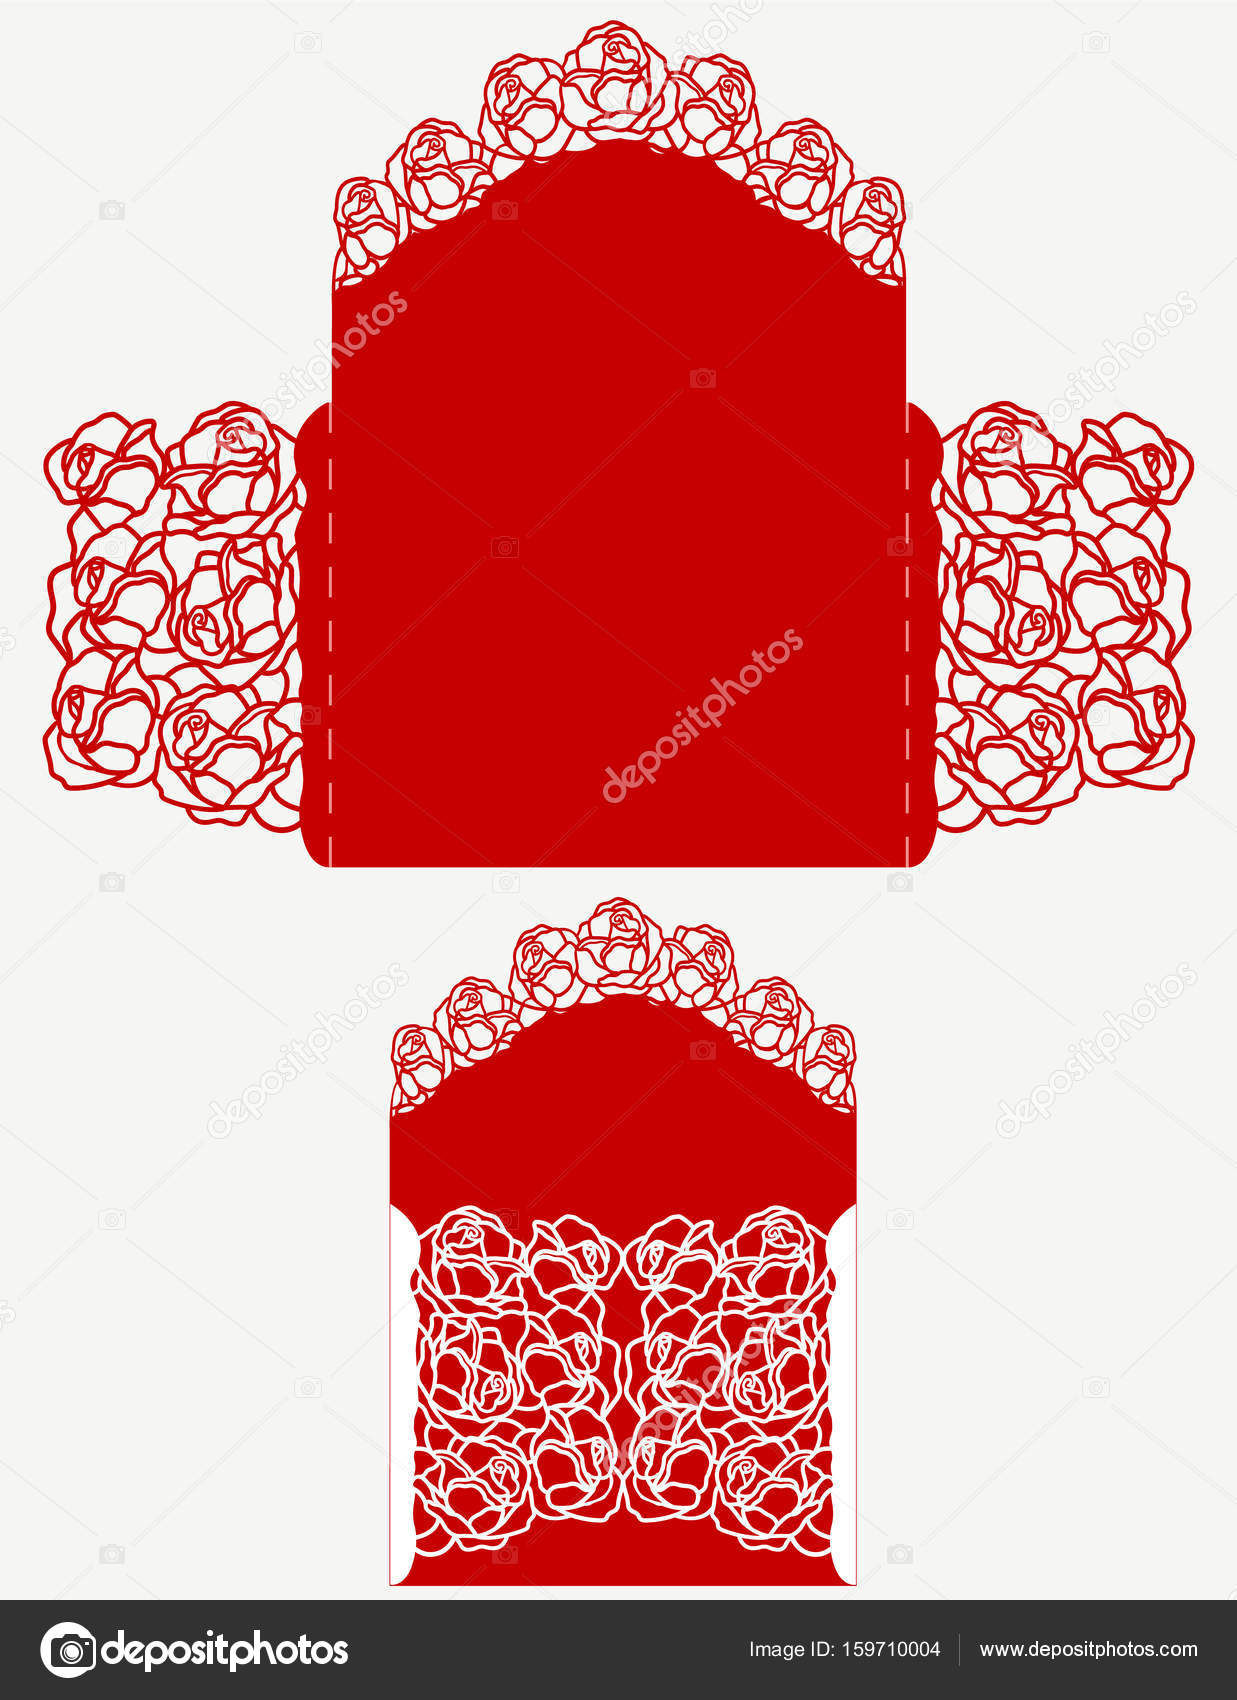 laser cut wedding invitation — Stock Vector © tatiana54 #159710004